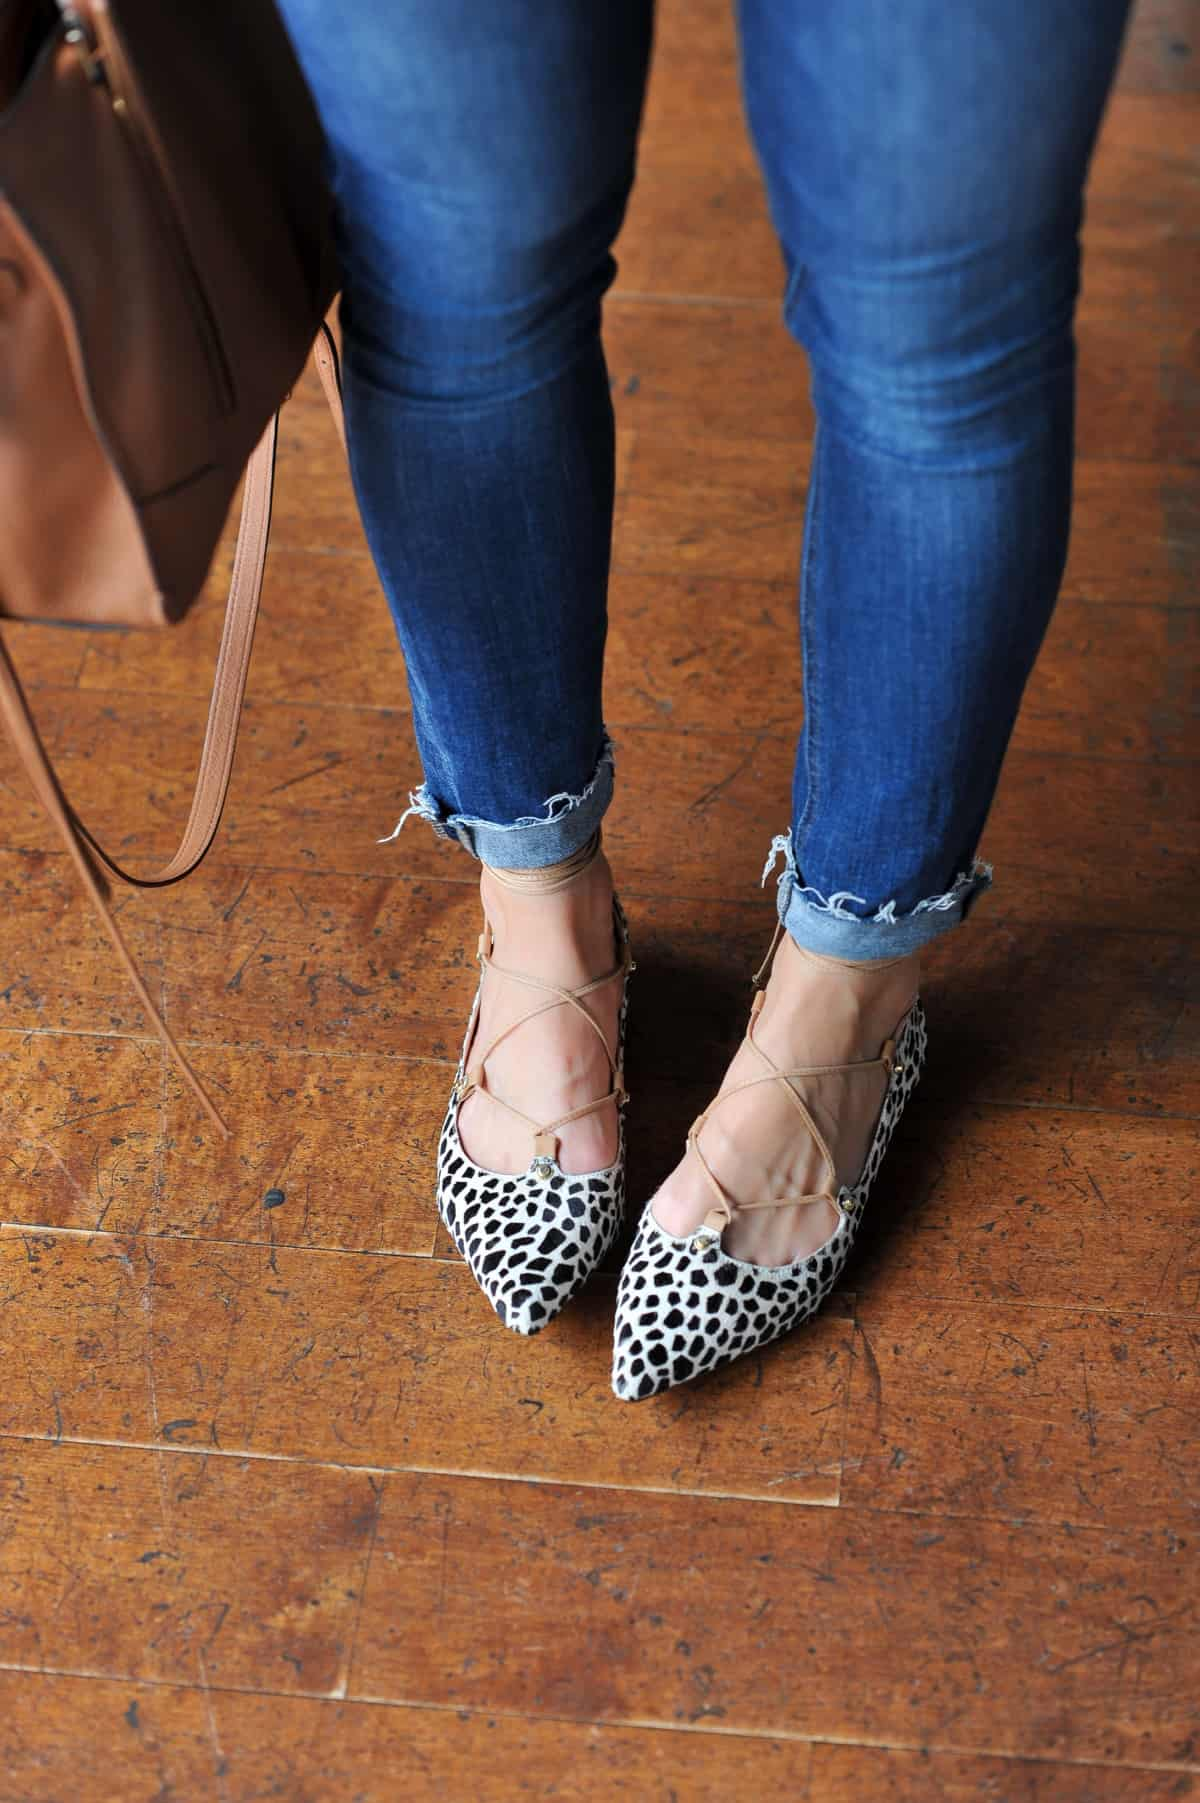 halogen spotted calf hair lace up flats nordstrom anniversary sale - My Style Vita @mystylevita - 15